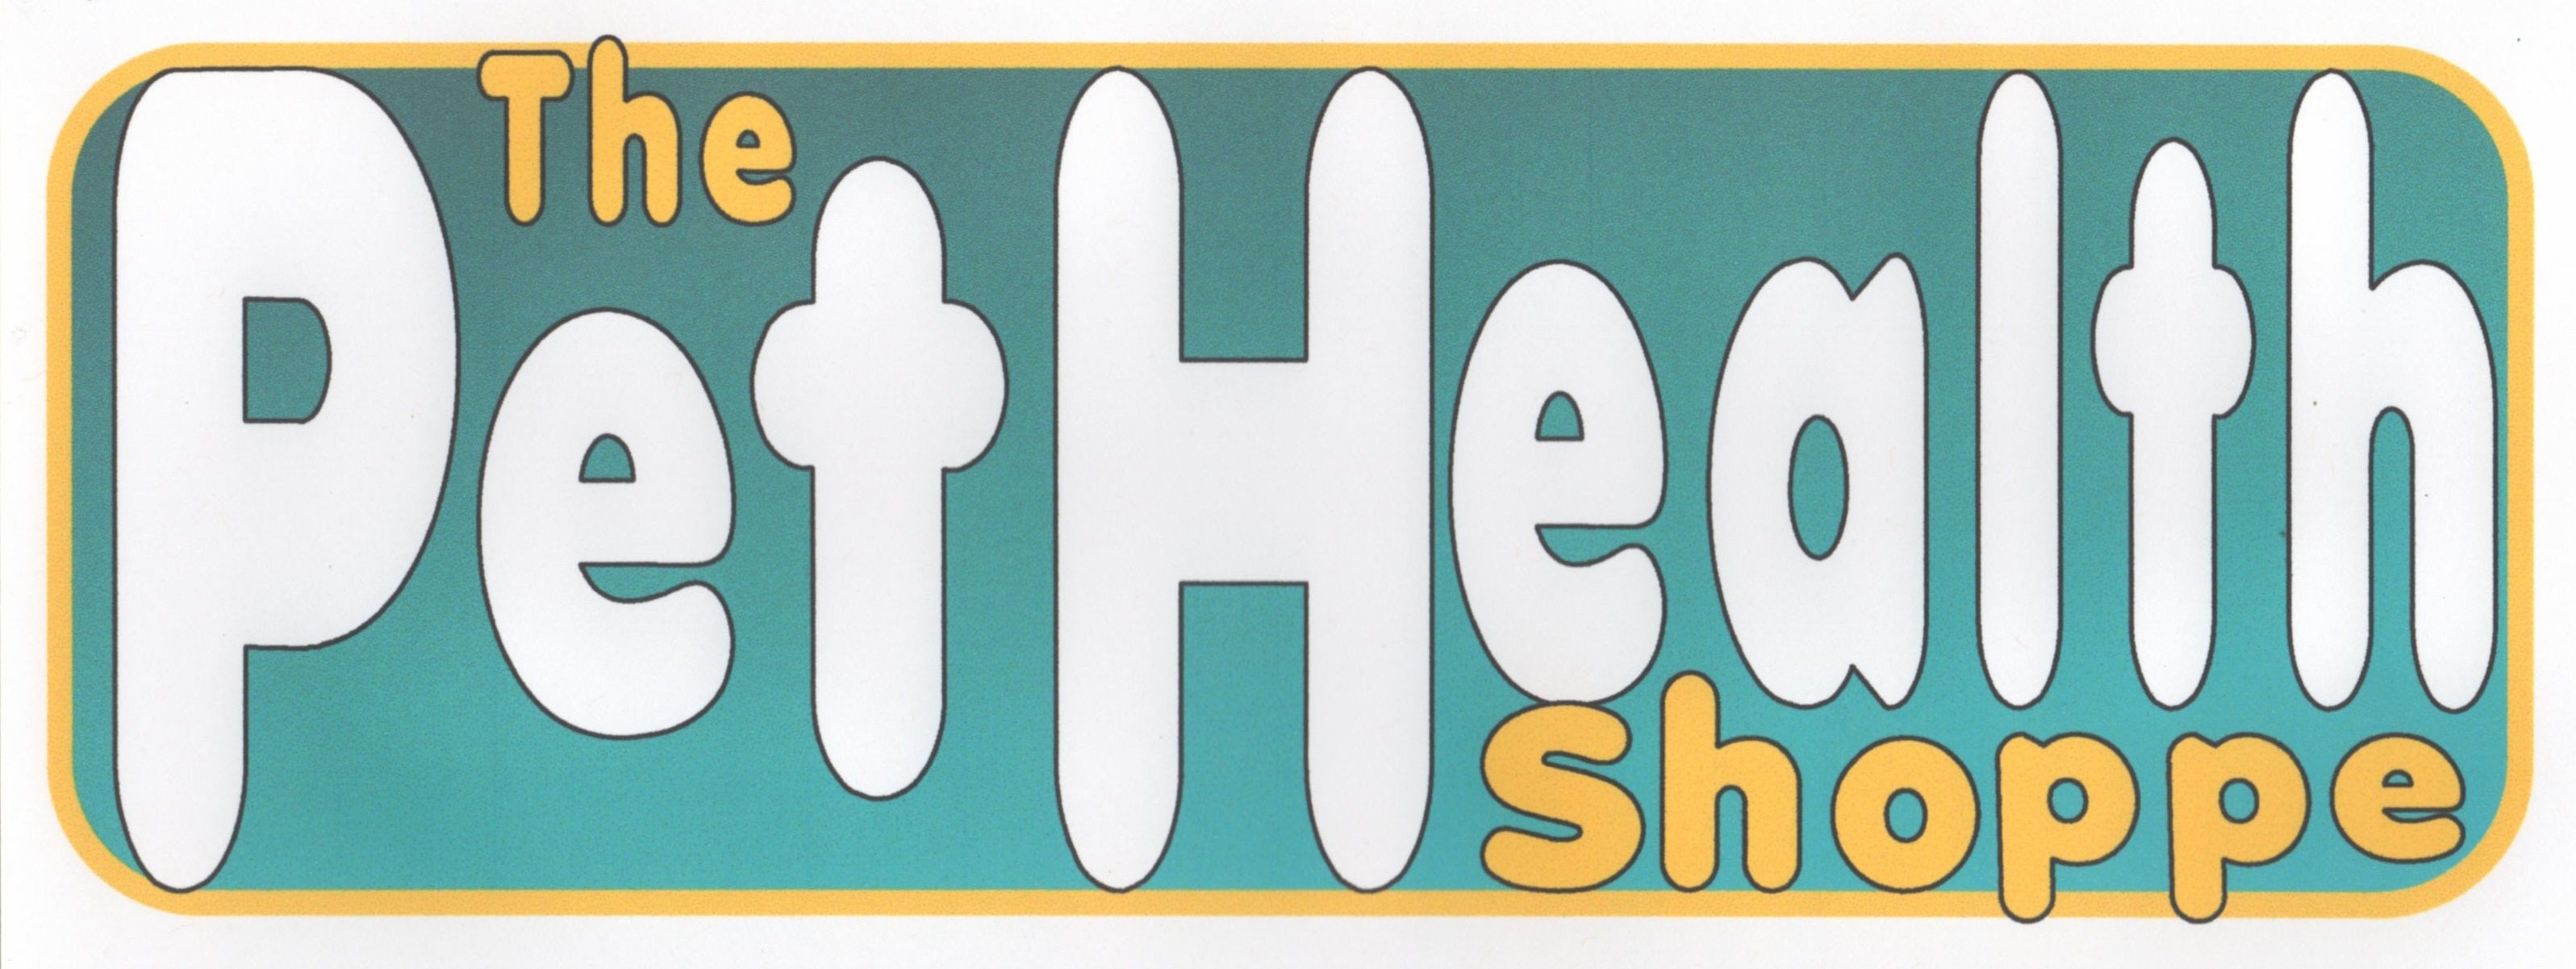 Pet Health Shoppe